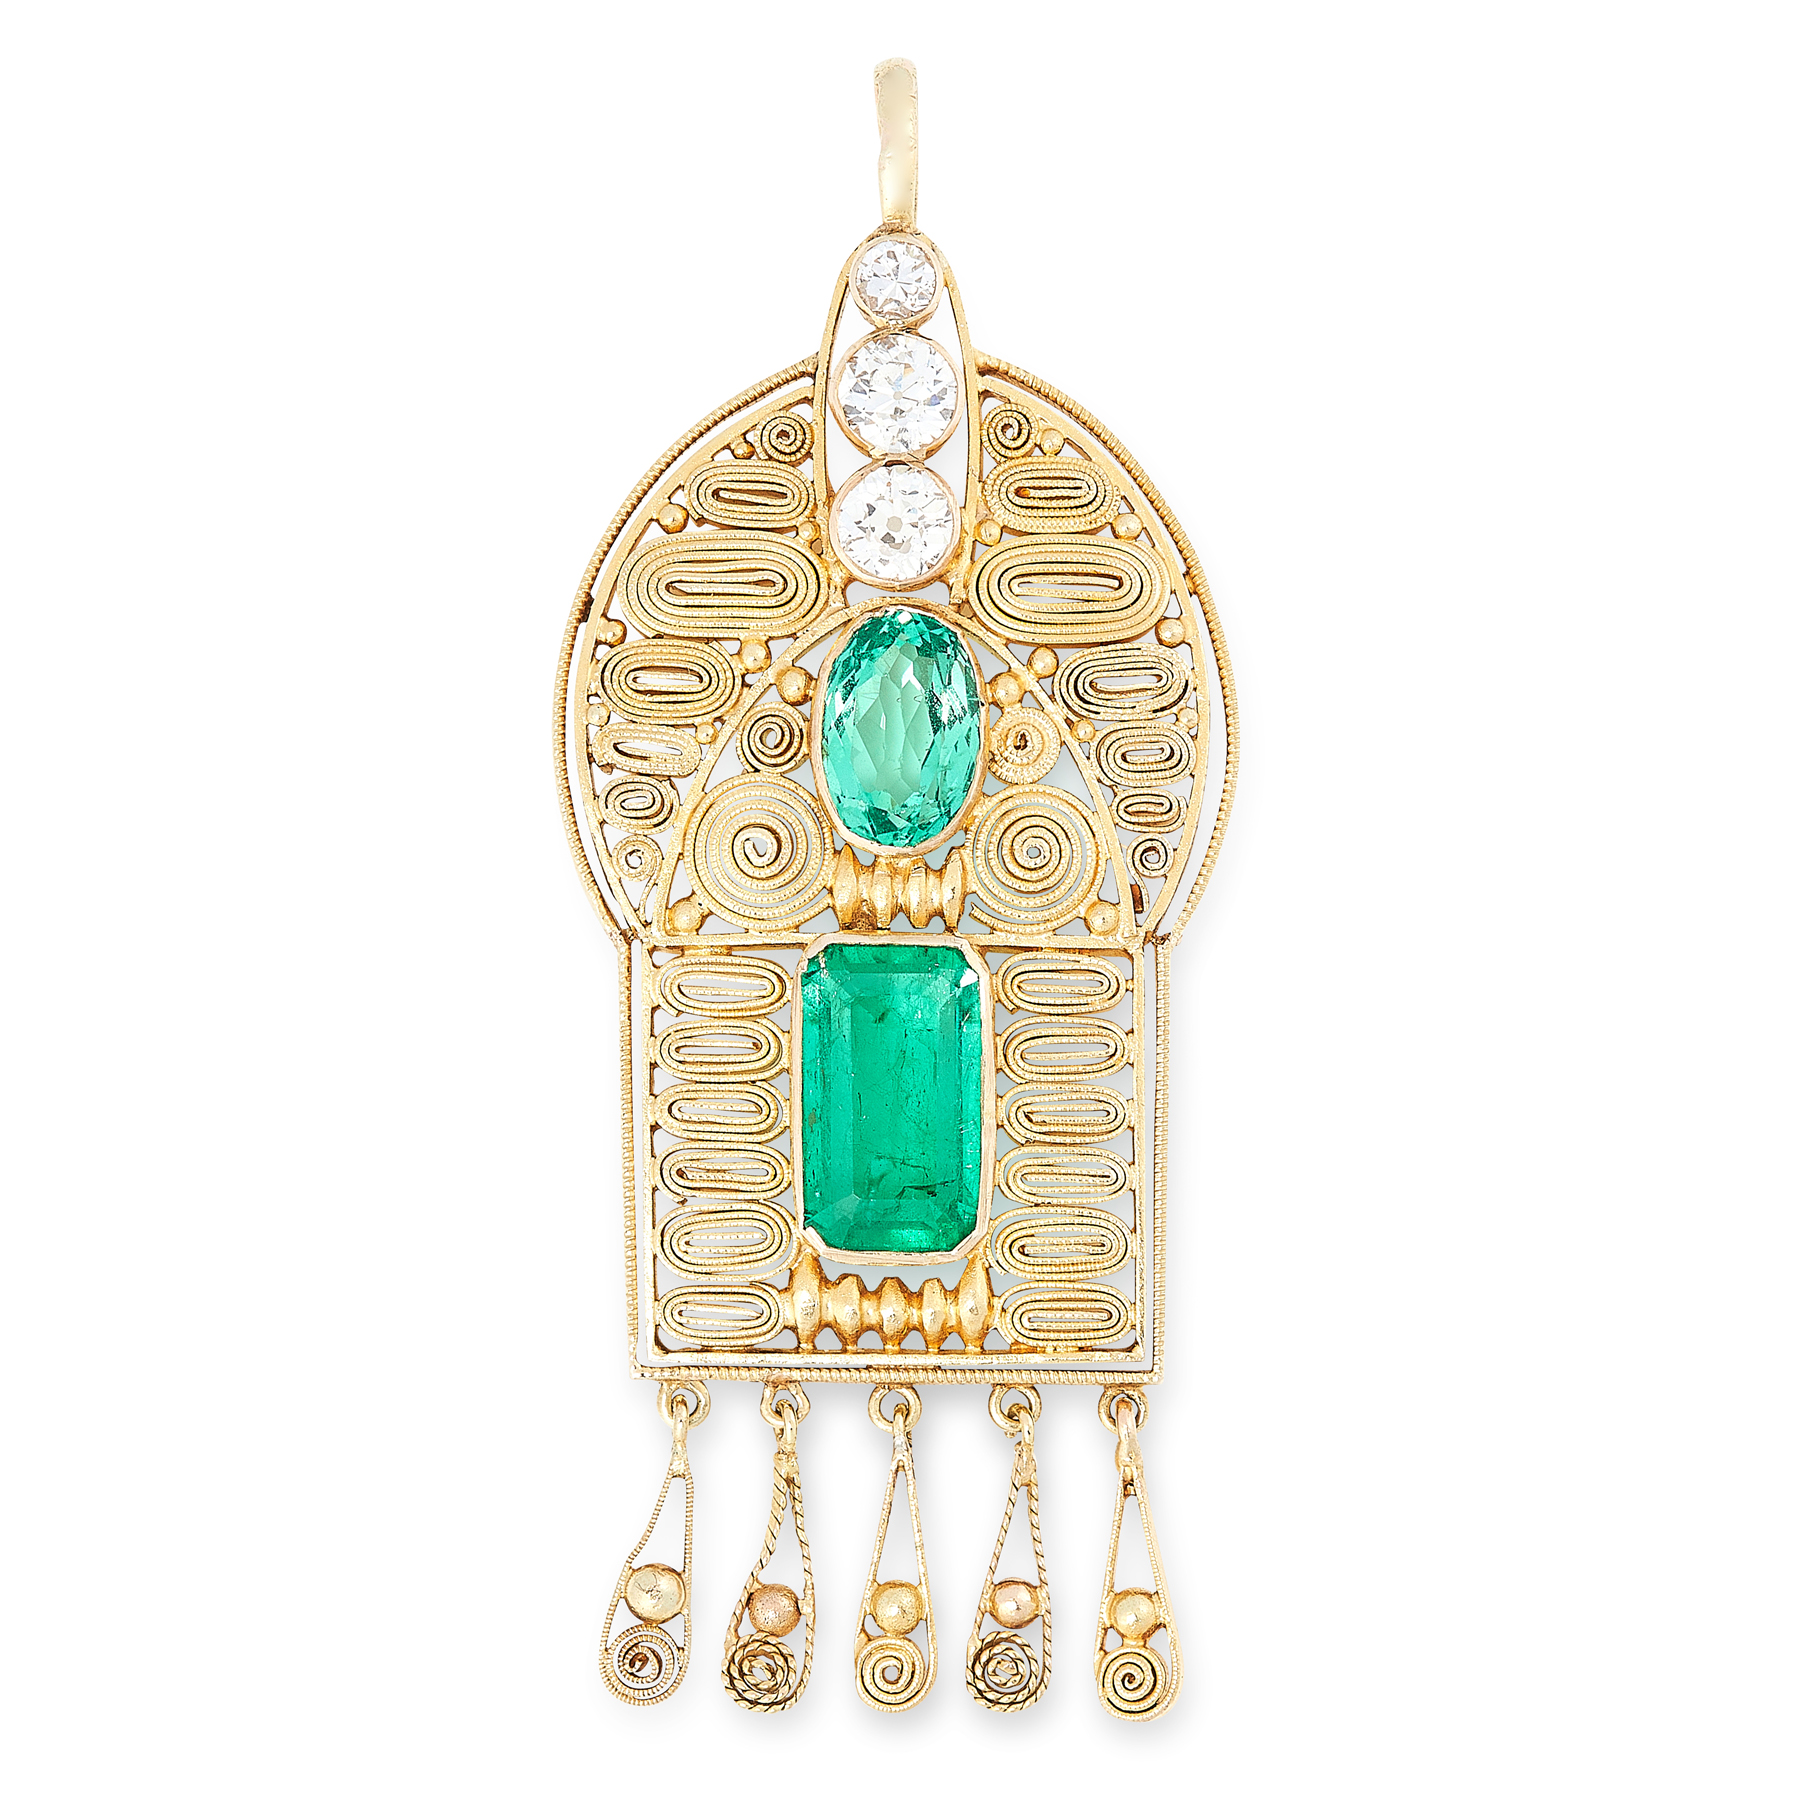 AN EMERALD AND DIAMOND PENDANT in high carat yellow gold, set with emerald cut and oval cut emeralds